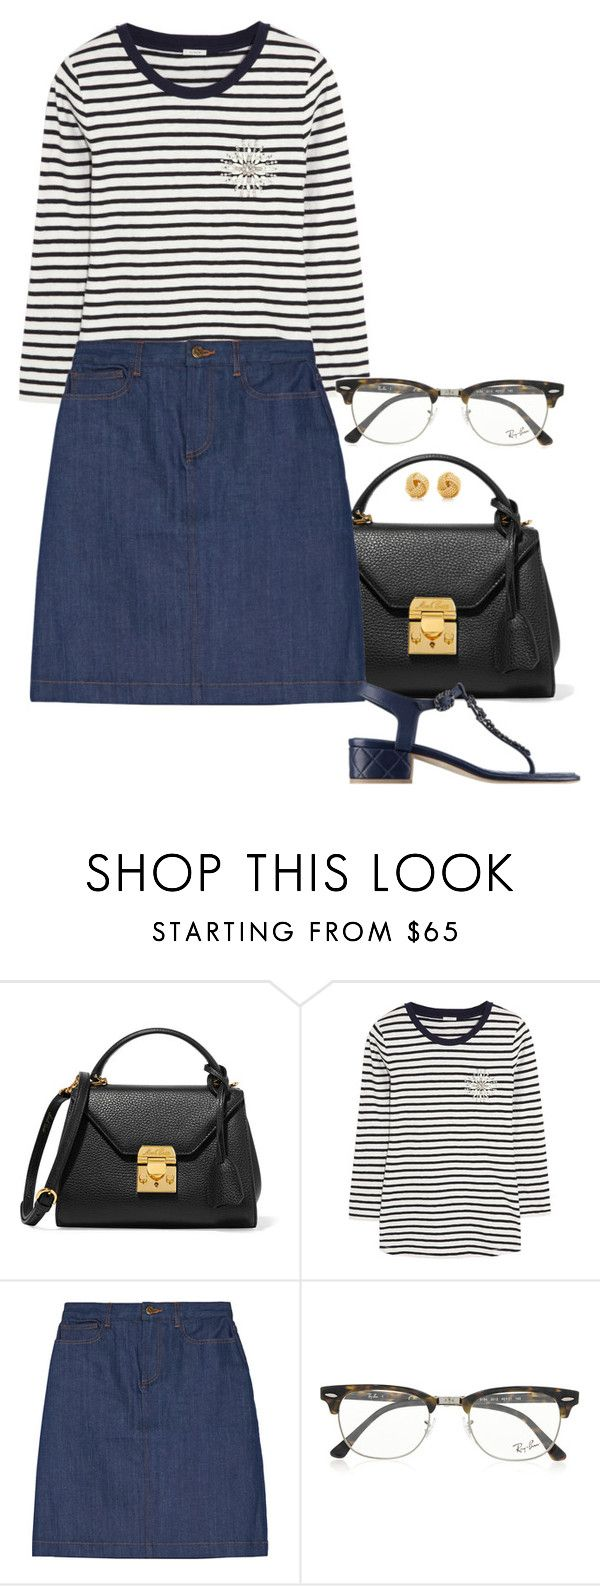 """Hwa."" by foreverforbiddenromancefashion ❤ liked on Polyvore featuring Mark Cross, J.Crew, A.P.C., Ray-Ban and Tiffany & Co."